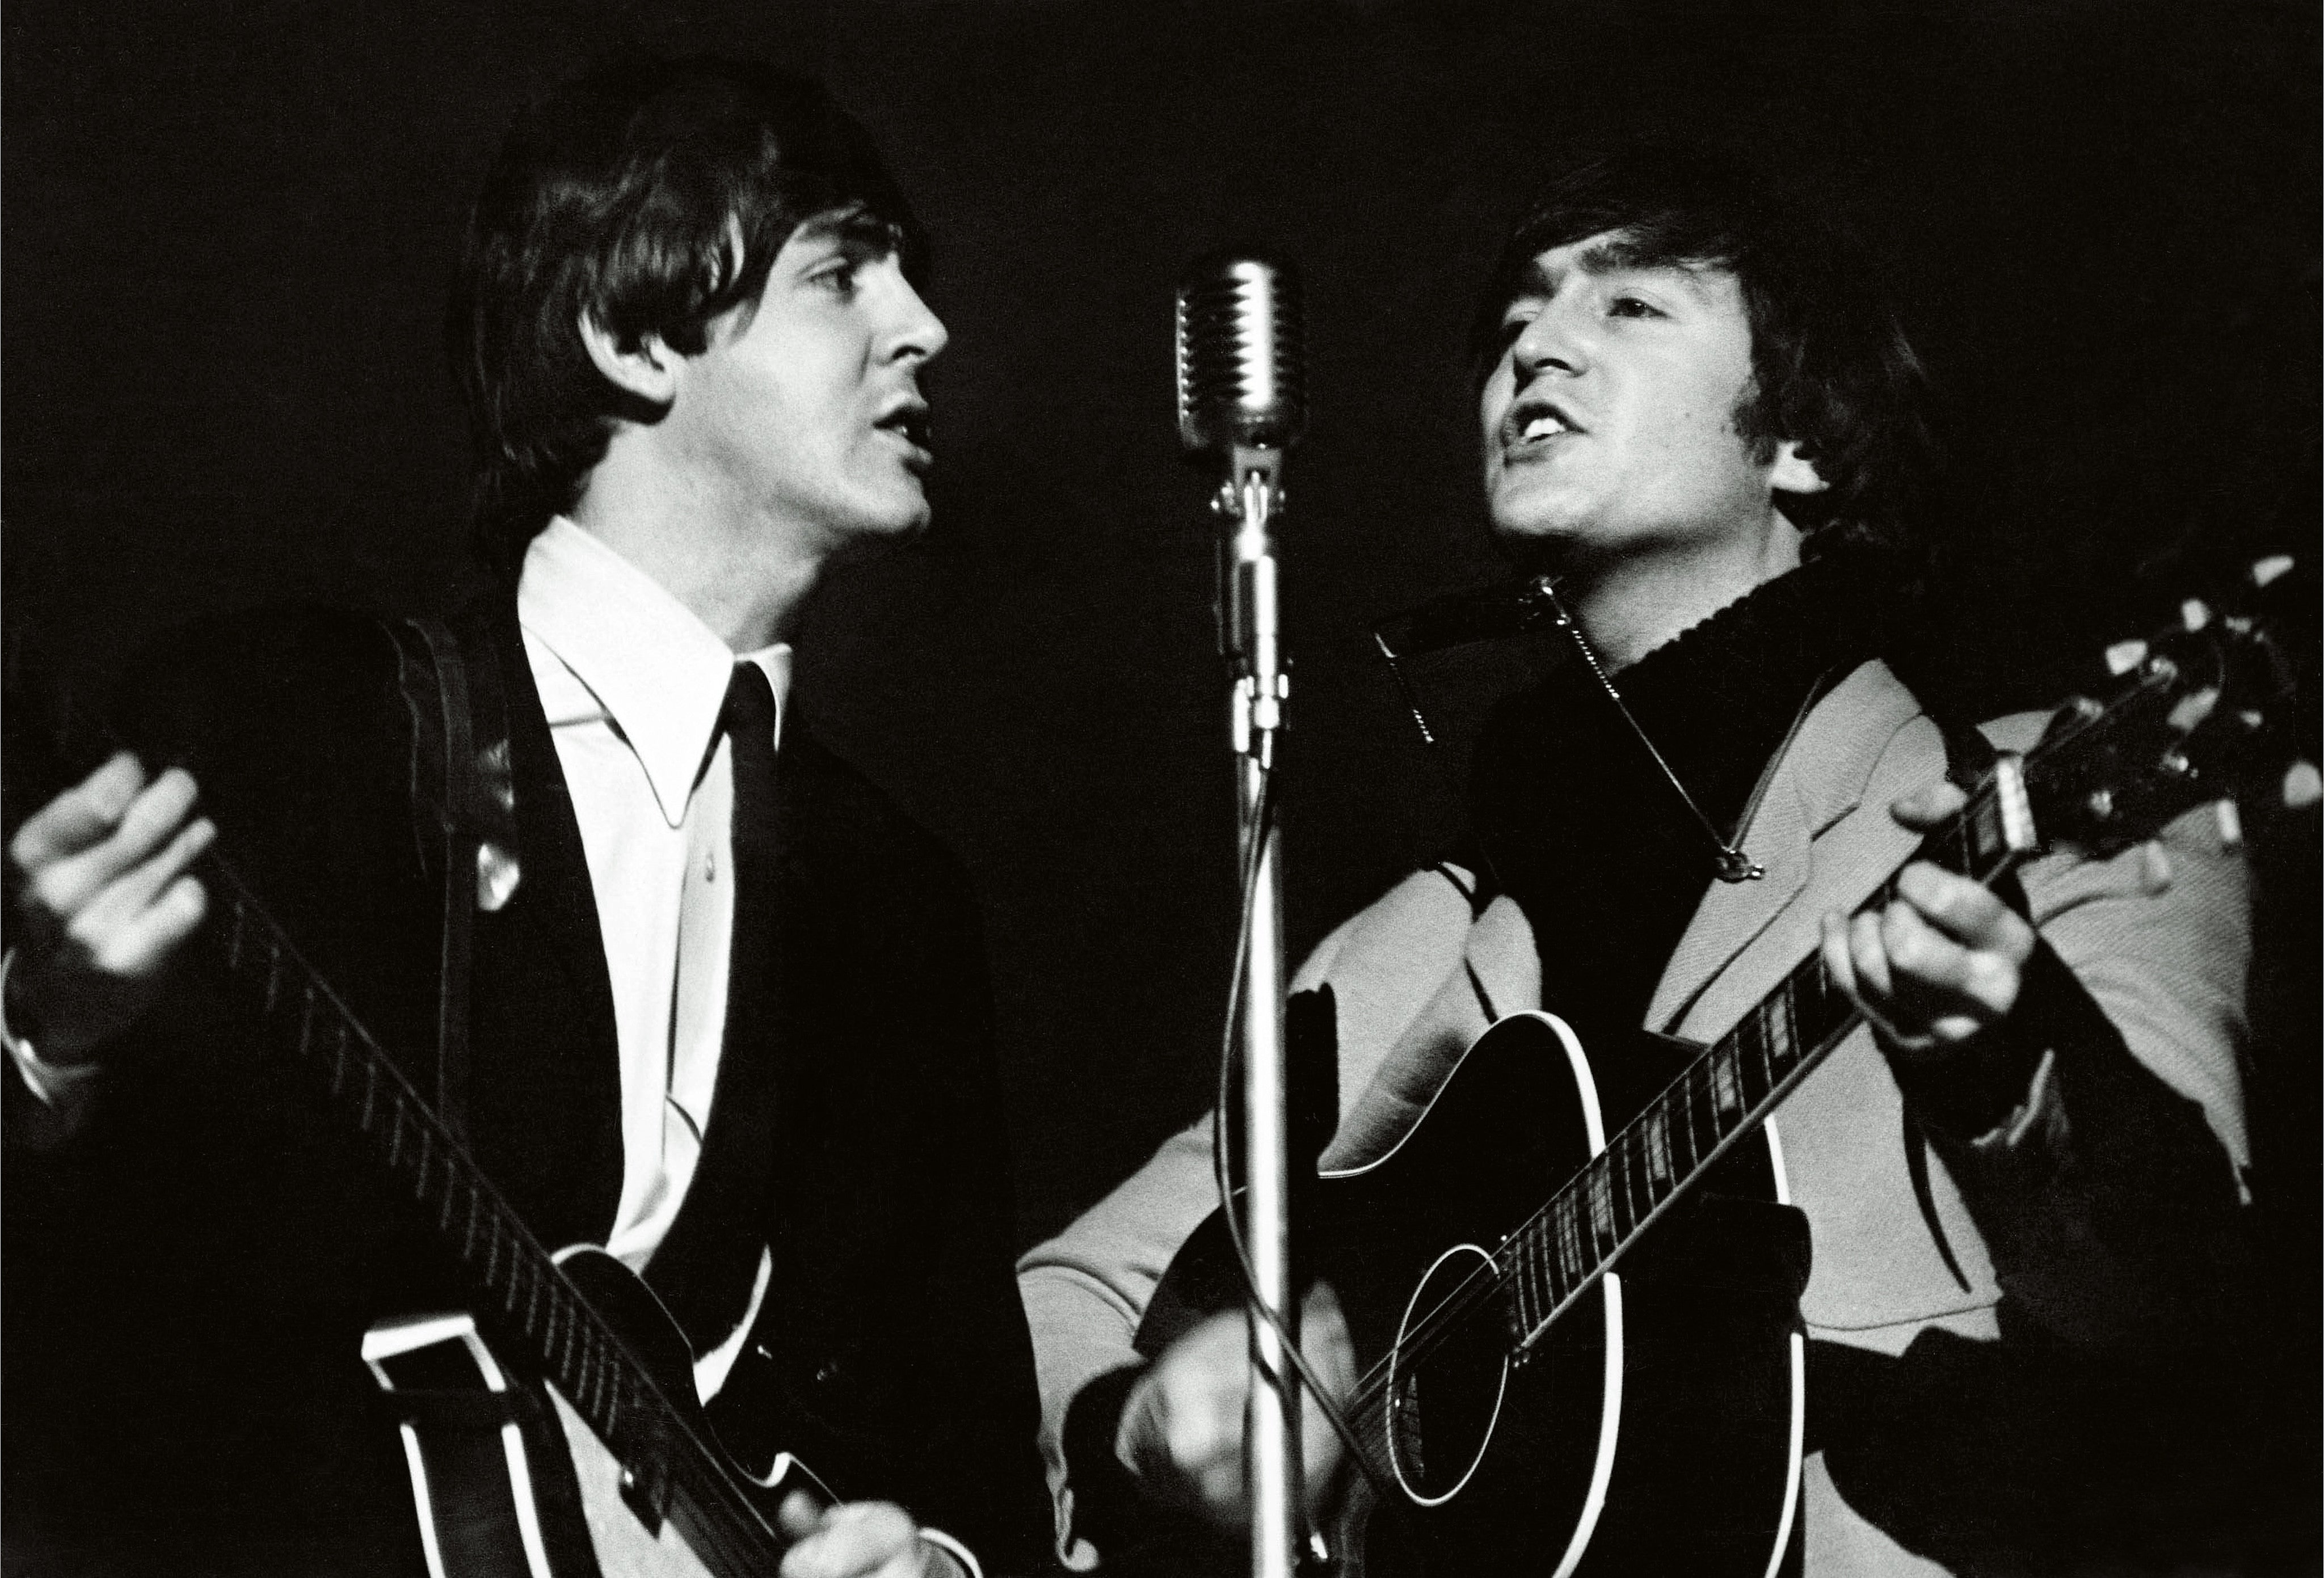 John Lennon Paul McCartney The Beatles 1964